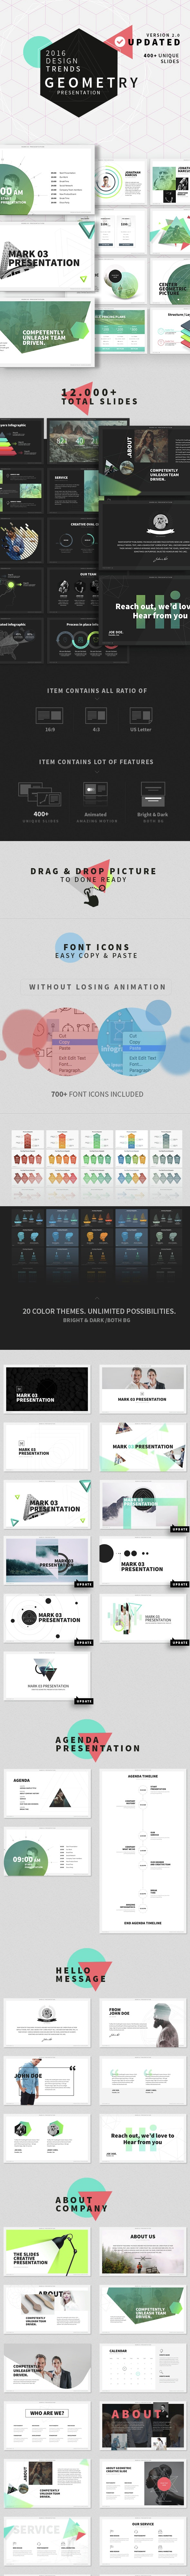 MARK03-Powerpoint Template  (v2.0) - Business PowerPoint Templates